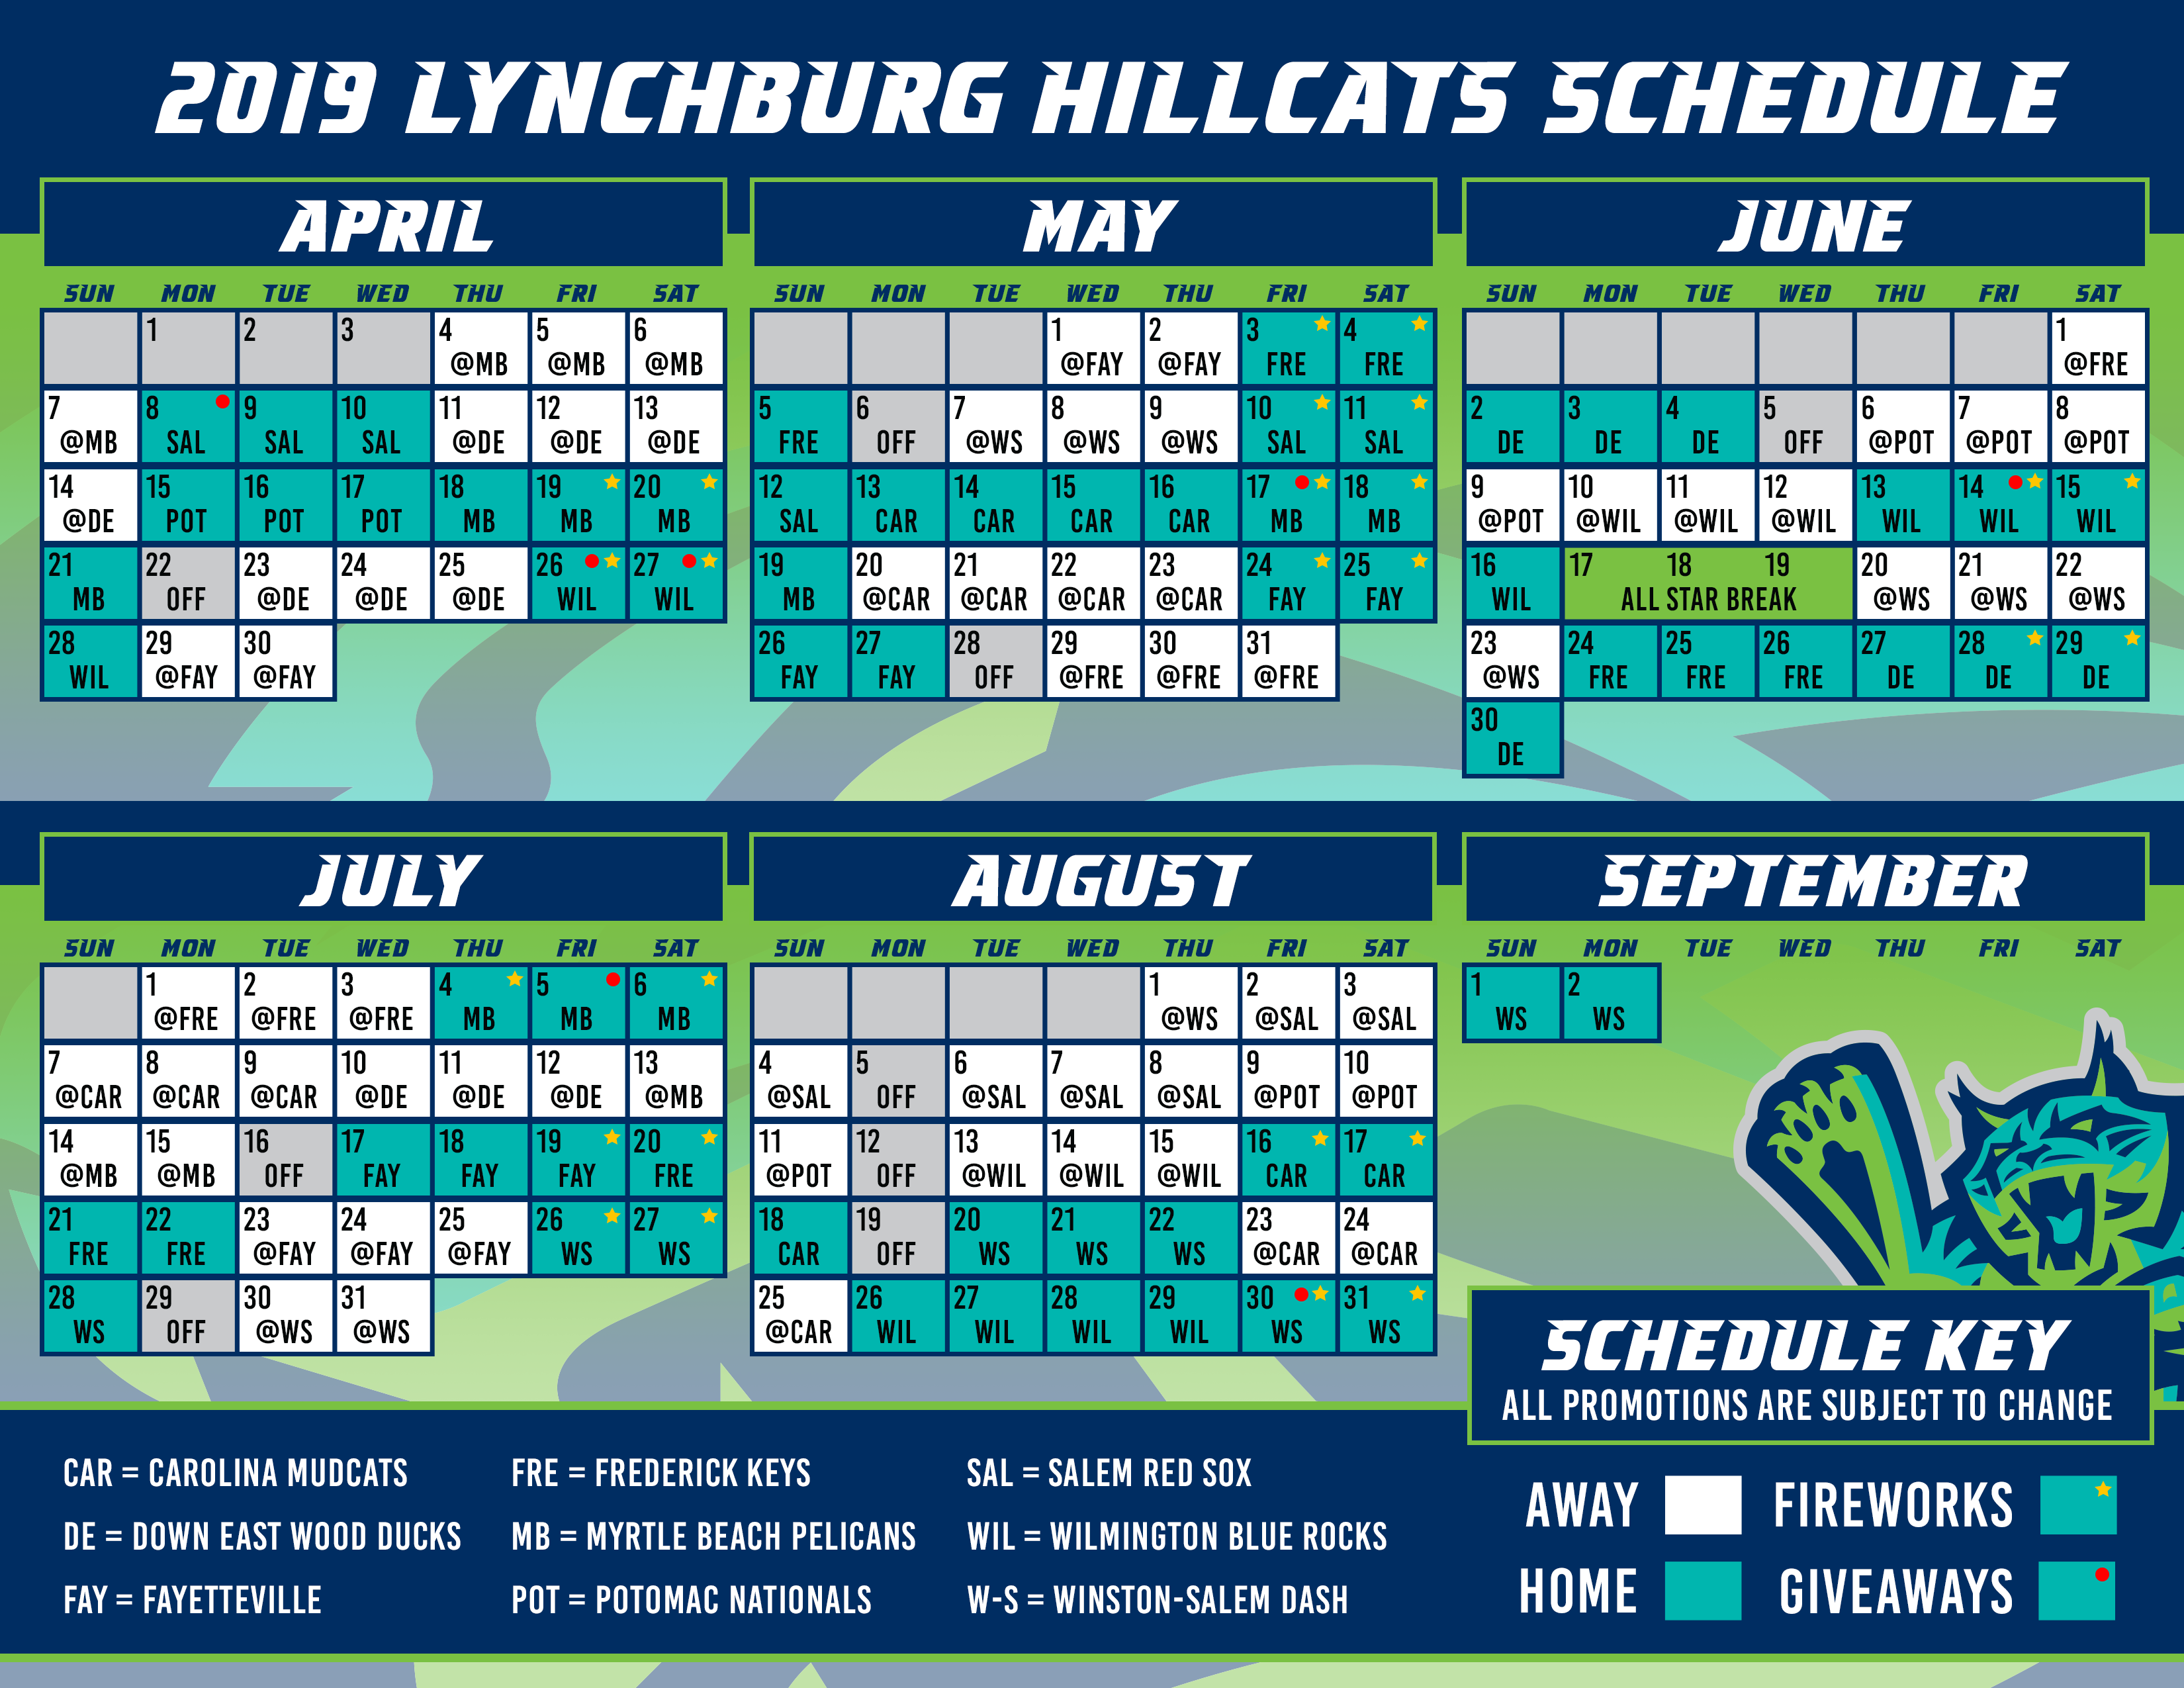 photo about Cleveland Indians Printable Schedule titled Lynchburg Hillcats Timetable Routine Hillcats